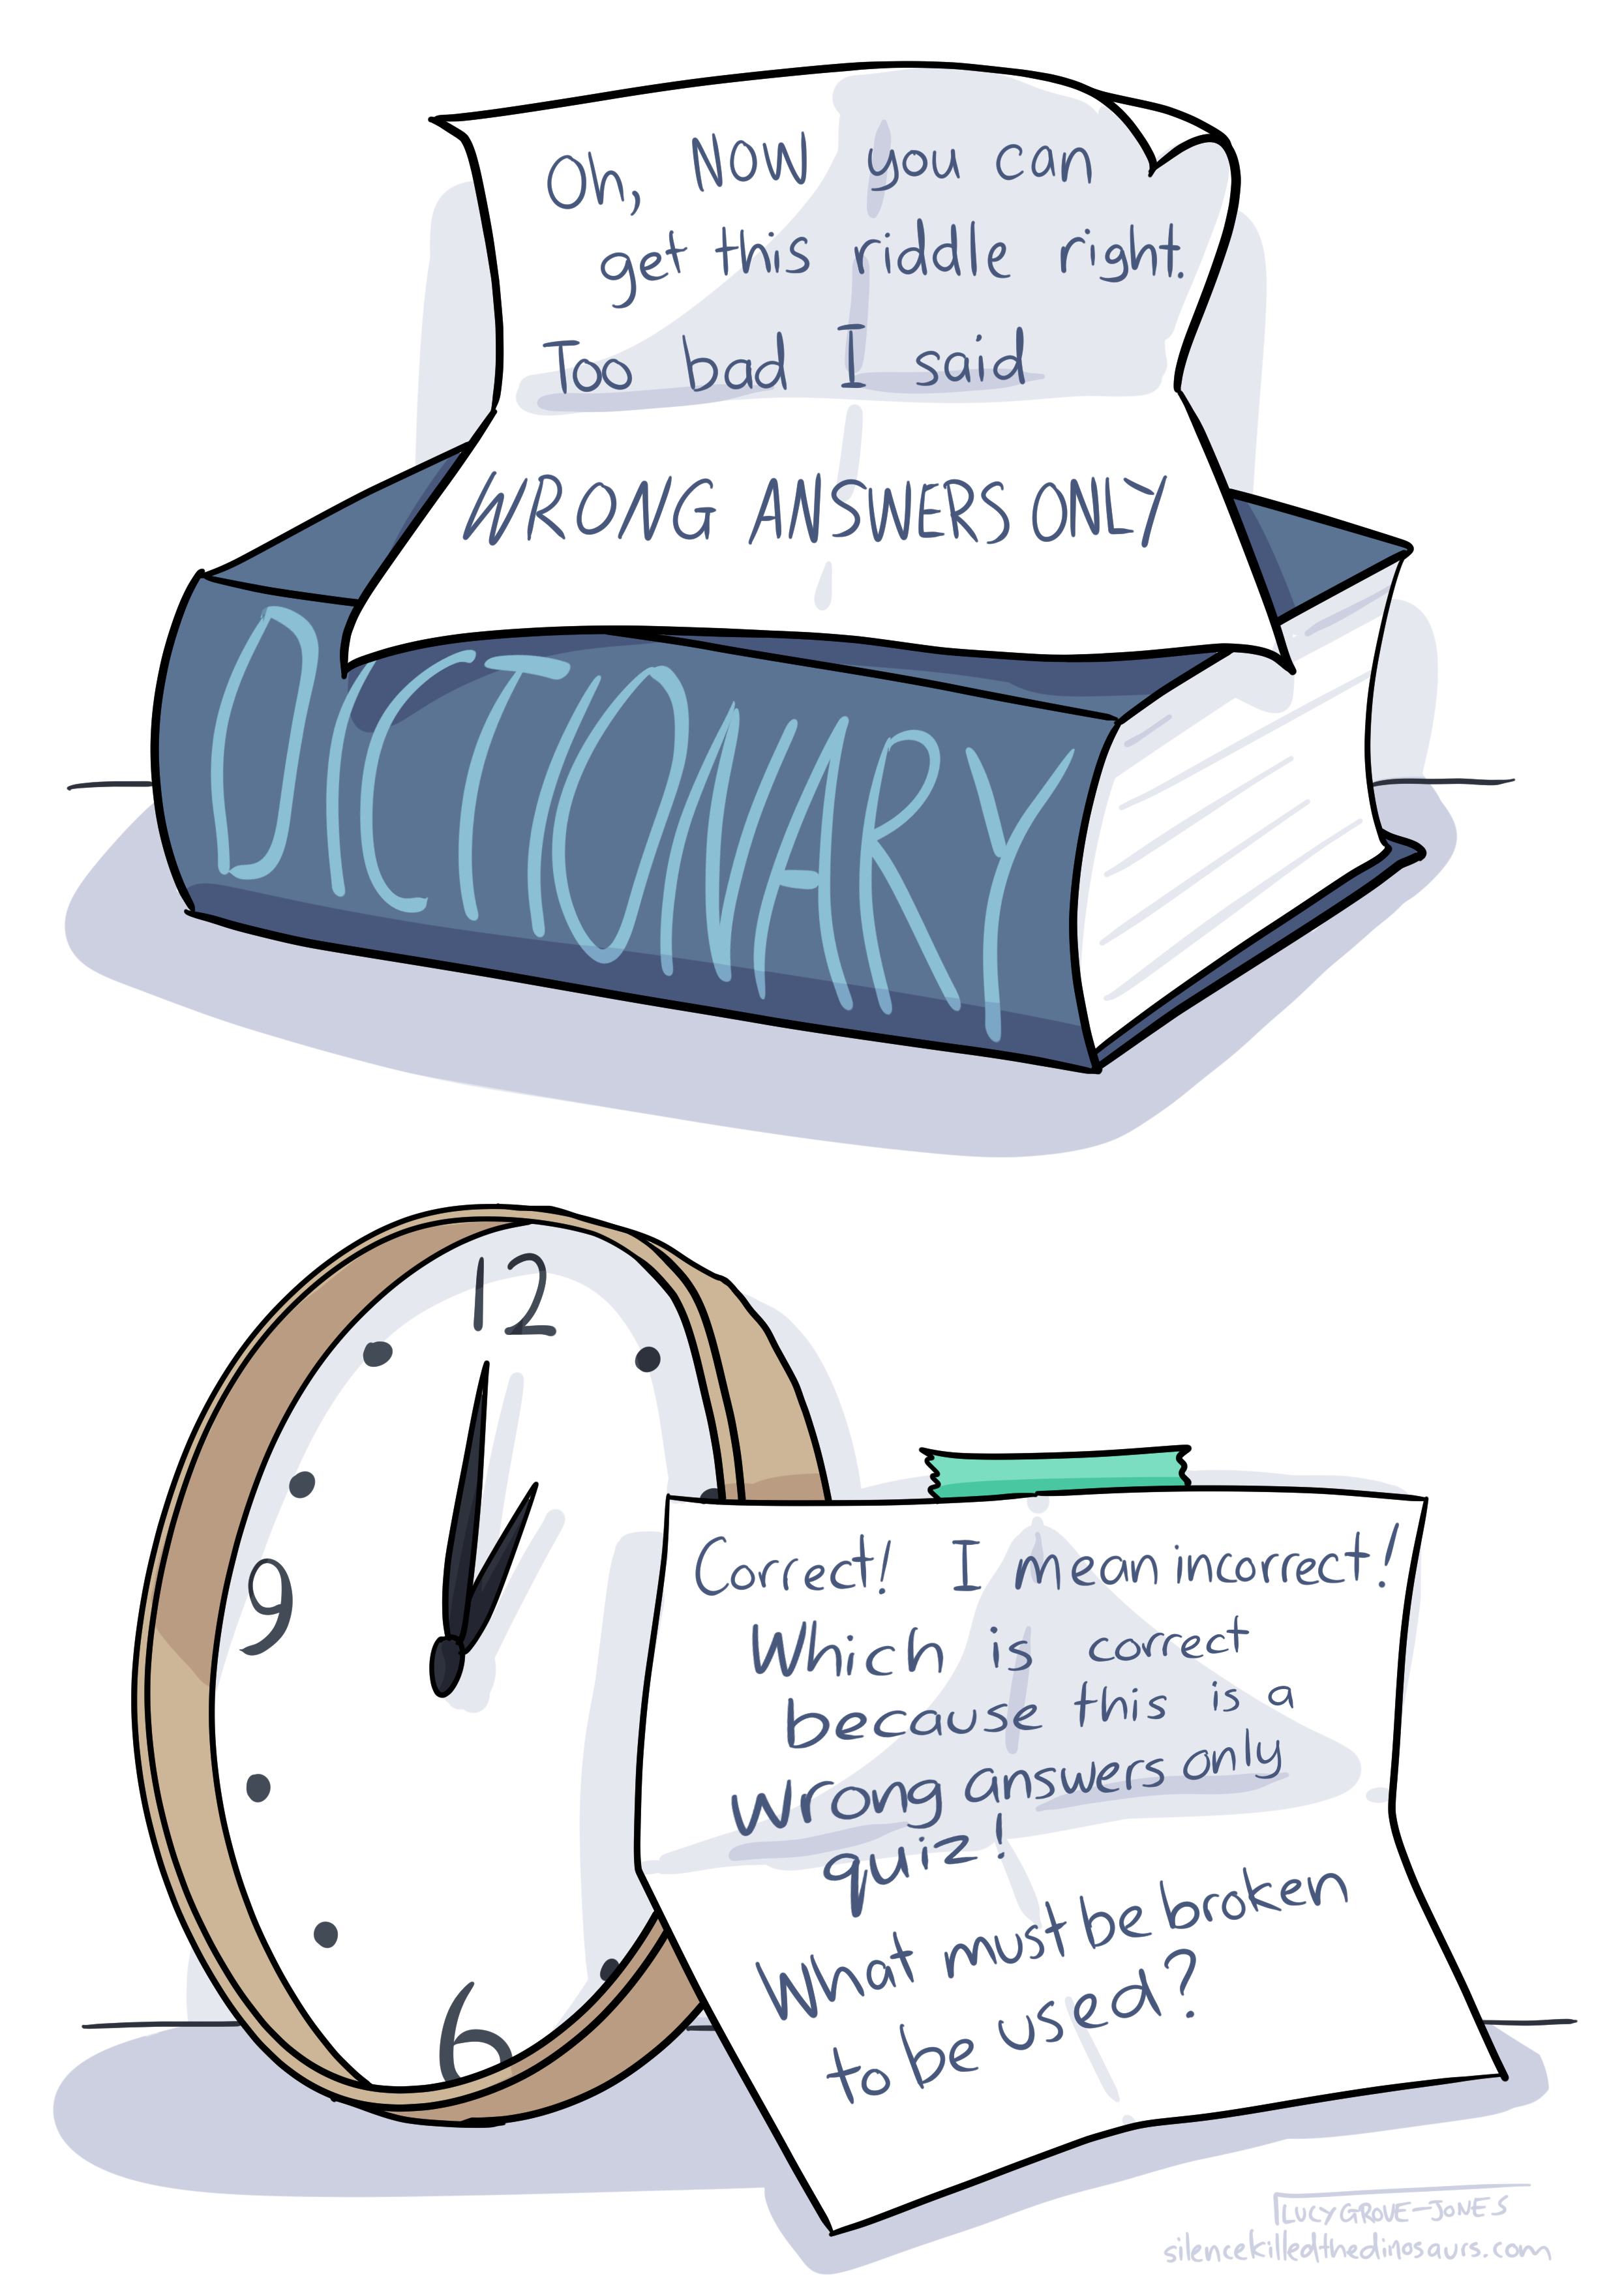 2 panels. Panel 1: The dictionary with a note that reads: 'Oh, NOW you can get this riddle right. Too bad I said WRONG ANSWERS ONLY.' Panel 2: The clock with a note that reads: 'Correct! I mean incorrect! Which is correct because this is a wrong answers only quiz! What must be broken to be used?'